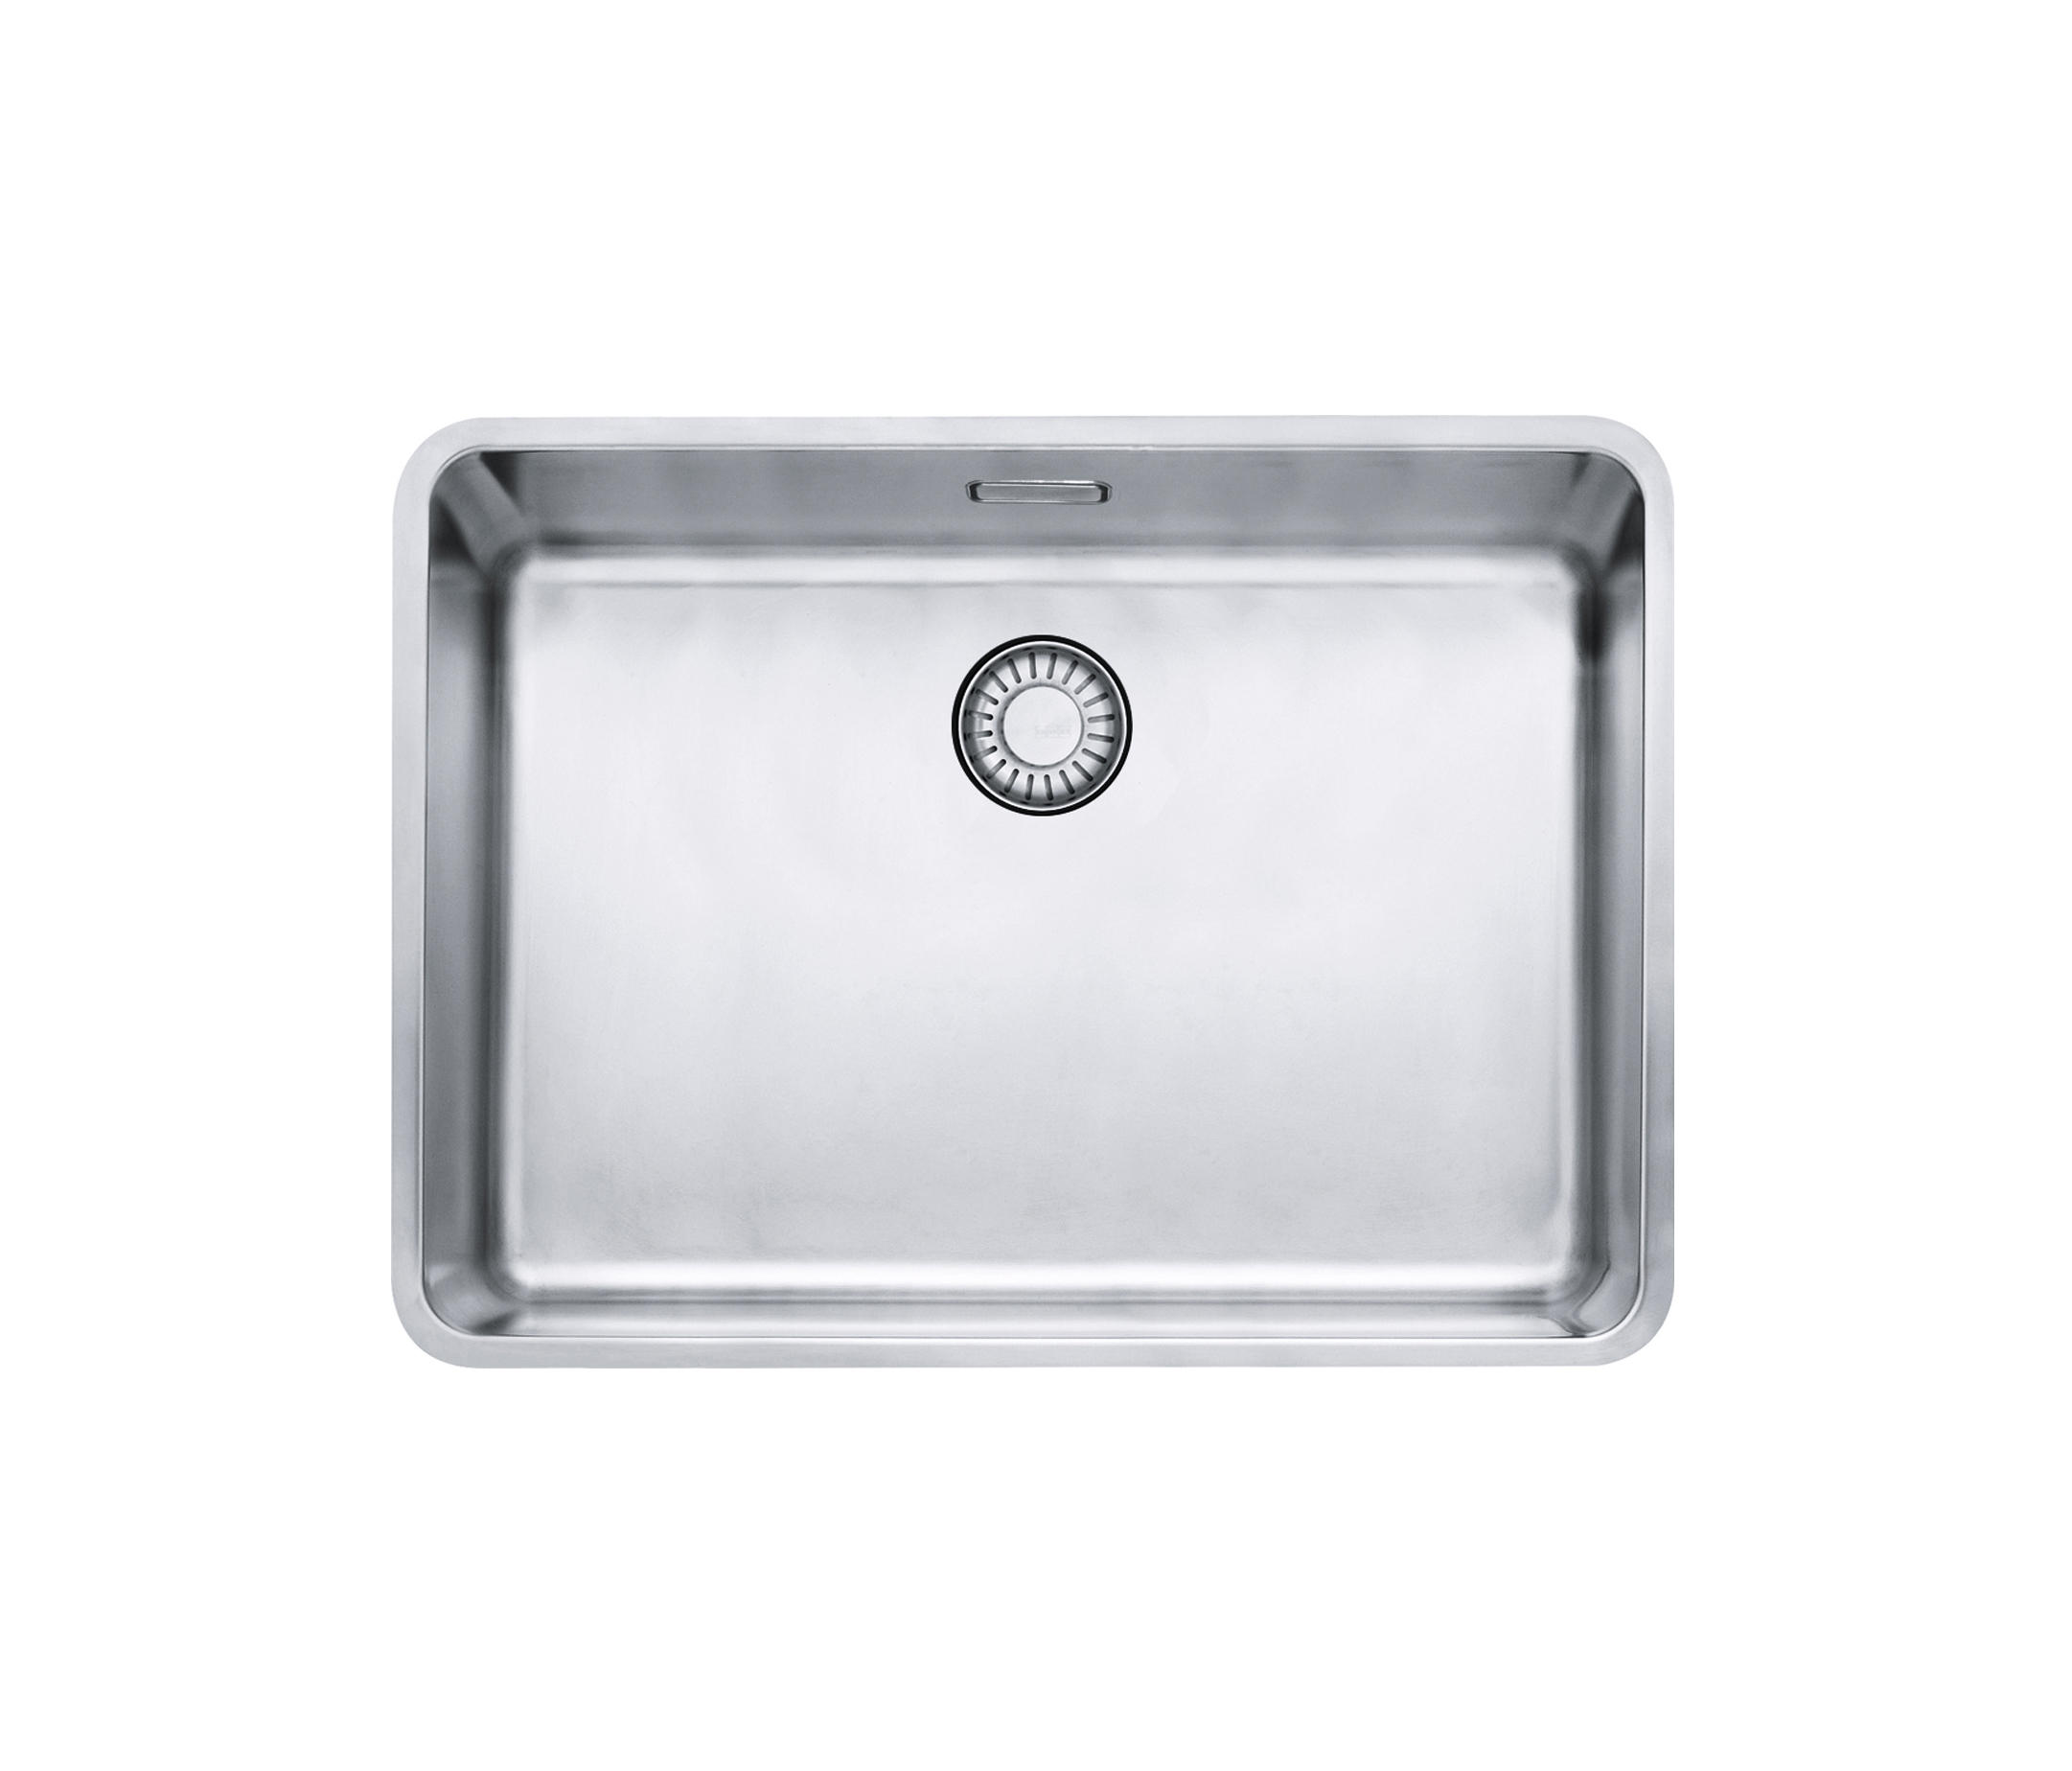 franke kitchen sinks portable kitchens kubus sink kbx 110 55 stainless steel from